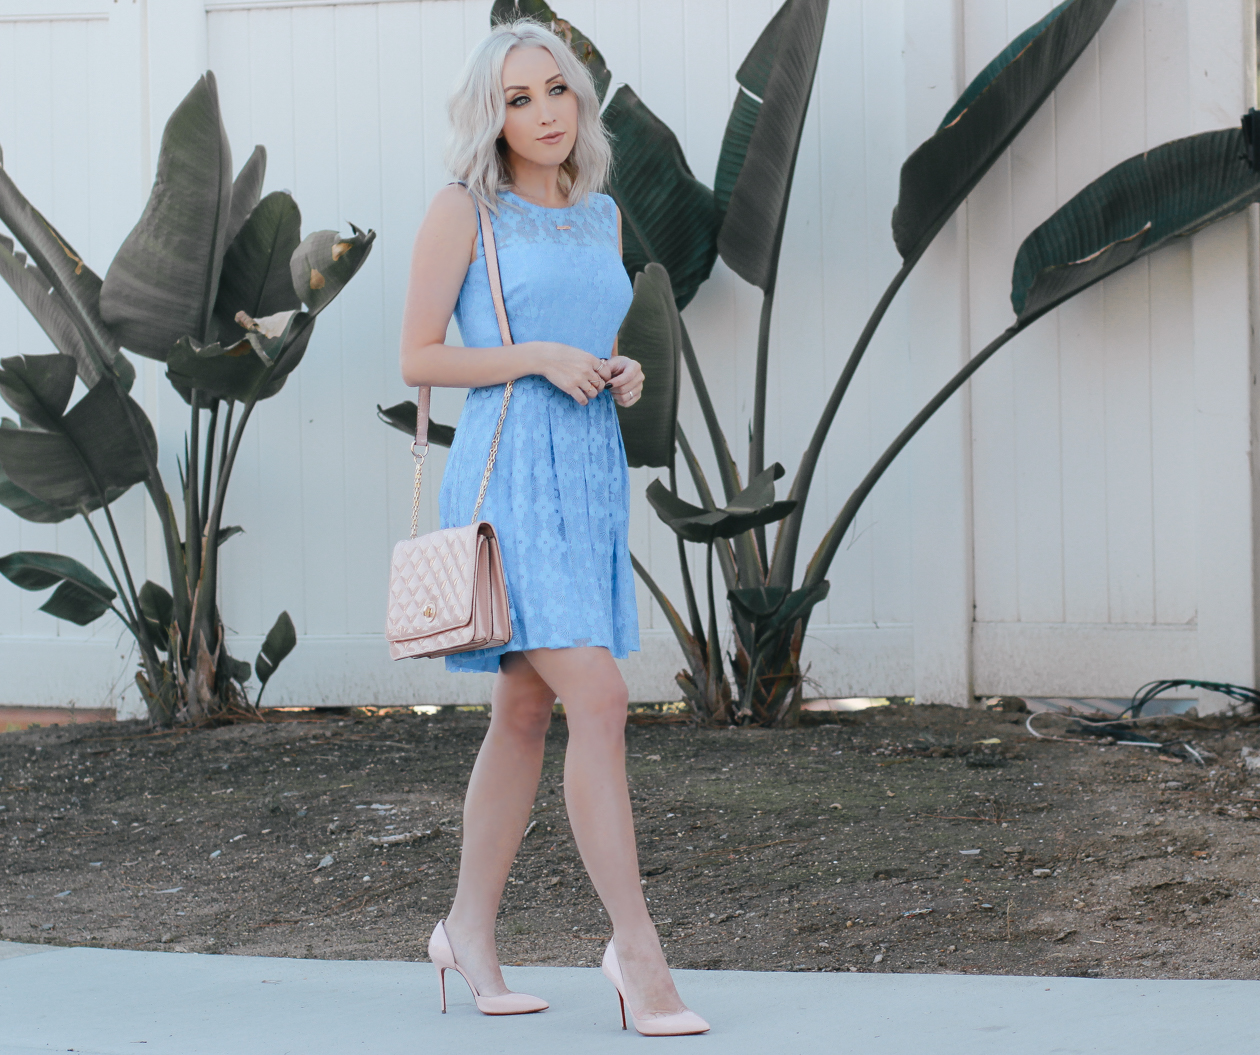 Periwinkle Dress by @maggylondon + Pink Christian Louboutin's | BlondieintheCity.com